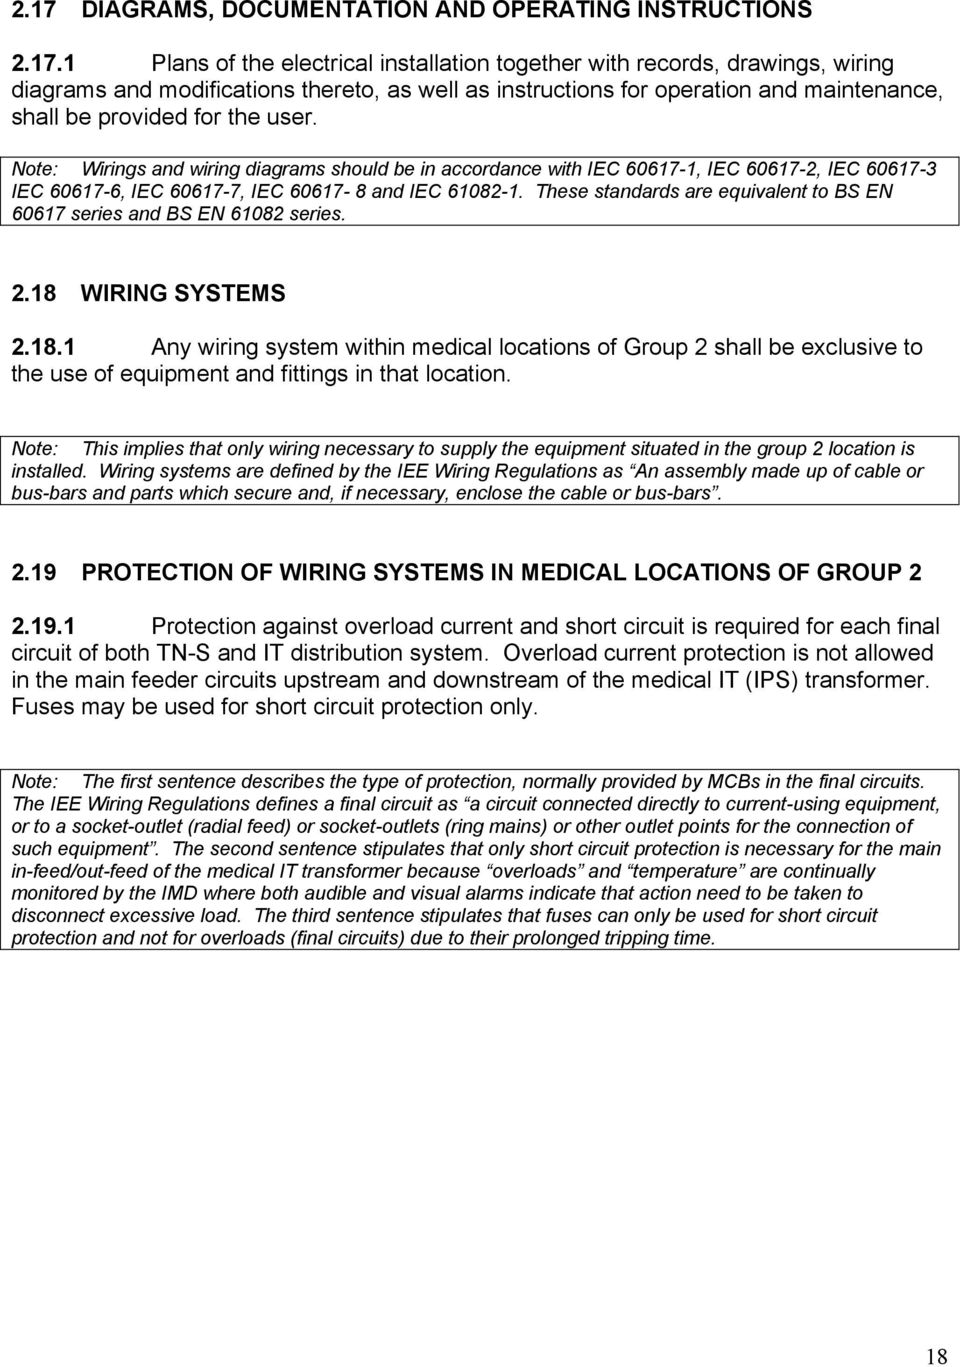 Healthcare Interpretation Of Iee Guidance Note 7 Chapter 10 And Electrical Installation Full Page Guide Wirings Wiring Diagrams Should Be In Accordance With Iec 60617 1